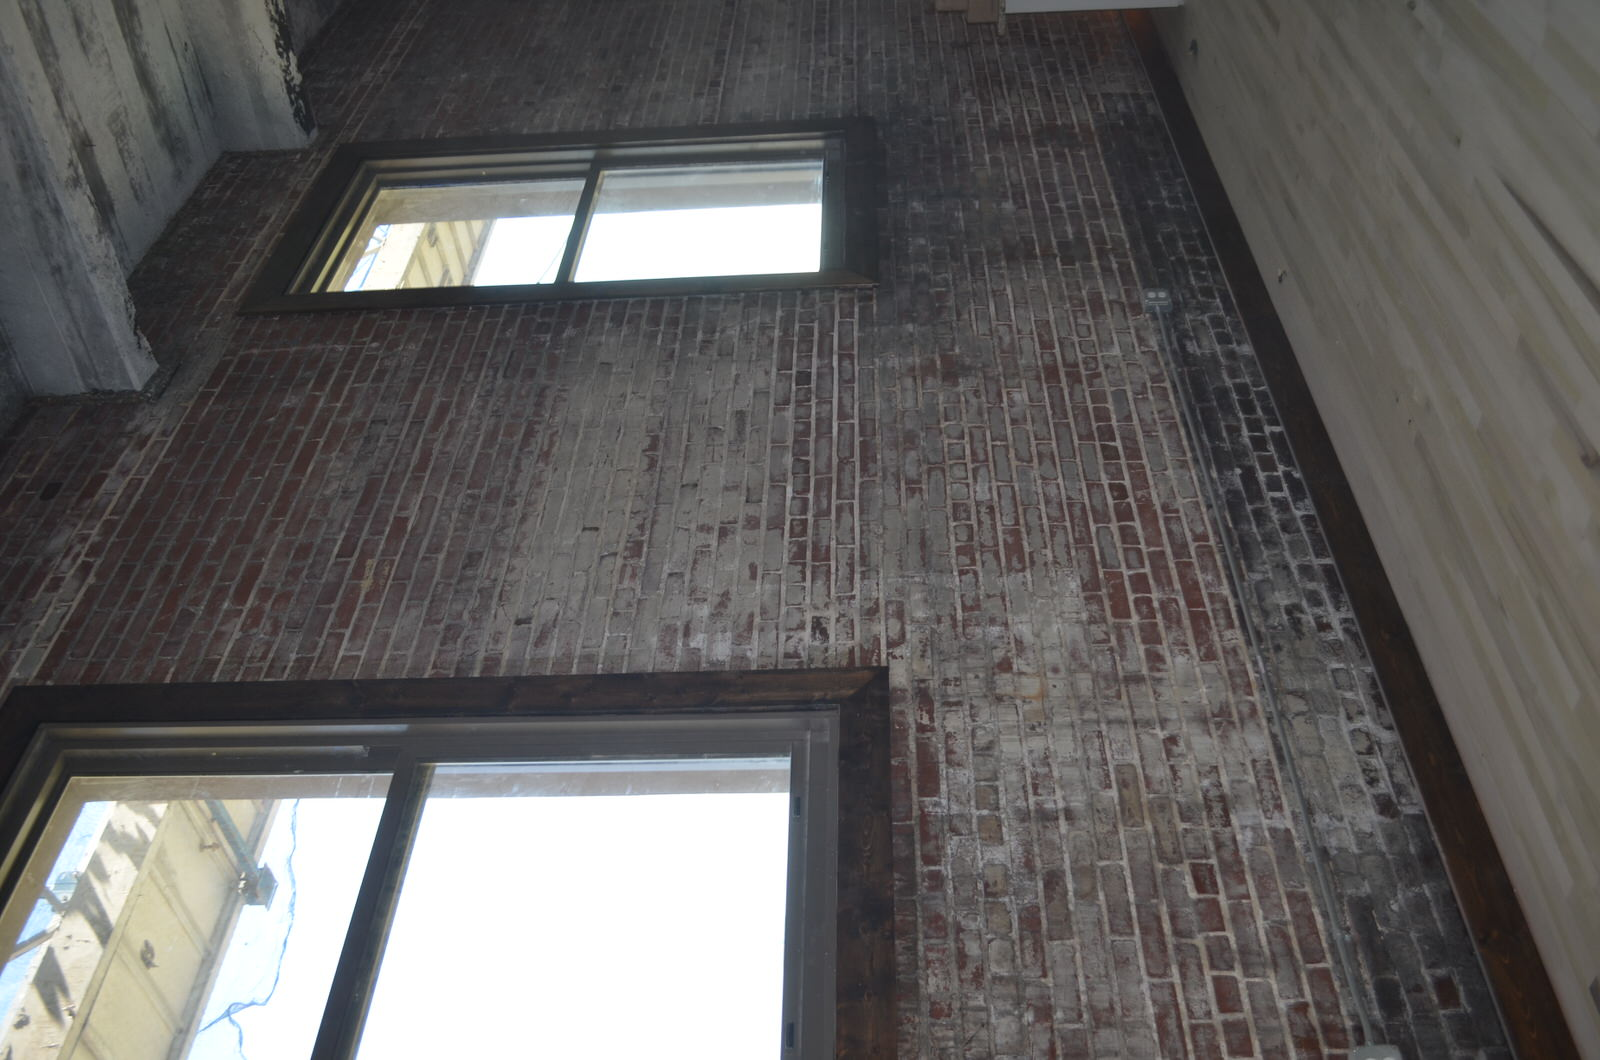 Pressbox Lofts Downtown Memphis, Tennessee - Historic Redevelopment Renovation - 20.jpg.JPG